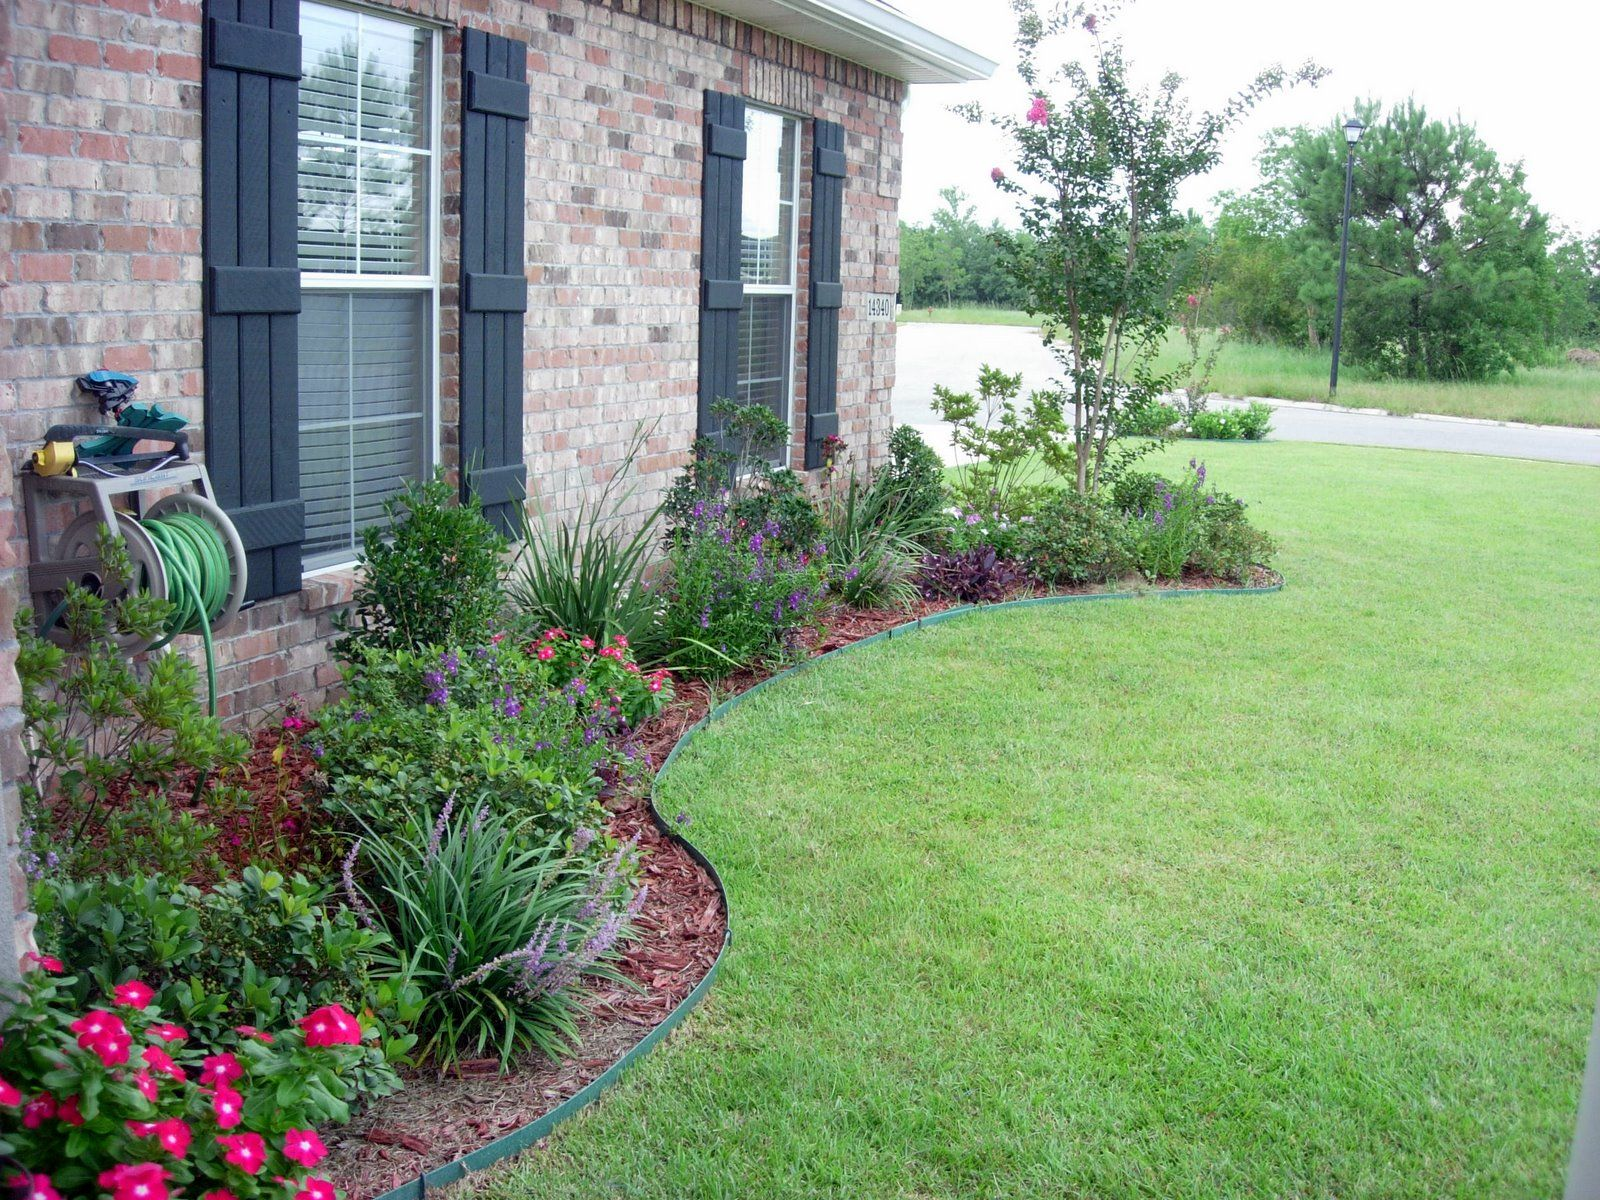 Flower Garden Designs garden and flowers 800x600 designing Flower Bed Designs For Front Of House Use Shrubs Small Trees To Form The